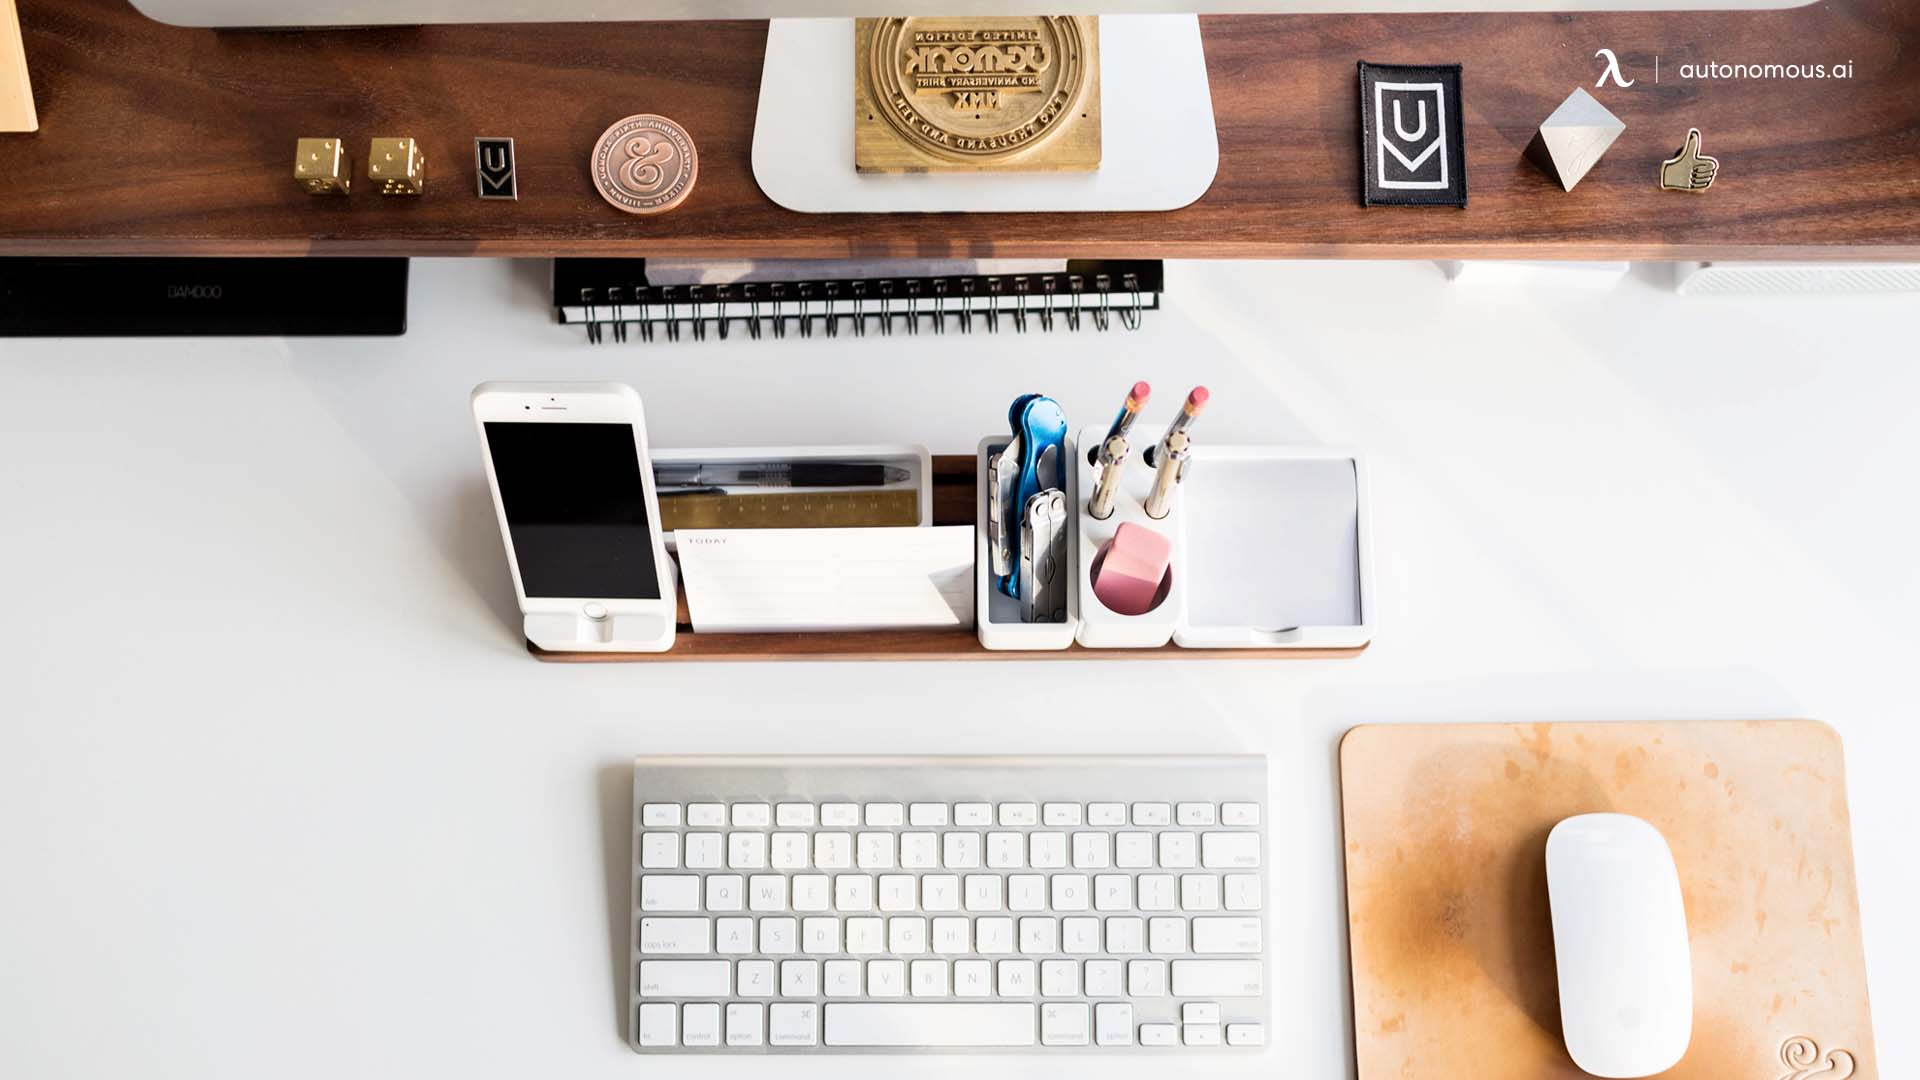 Plan a schedule and a workspace